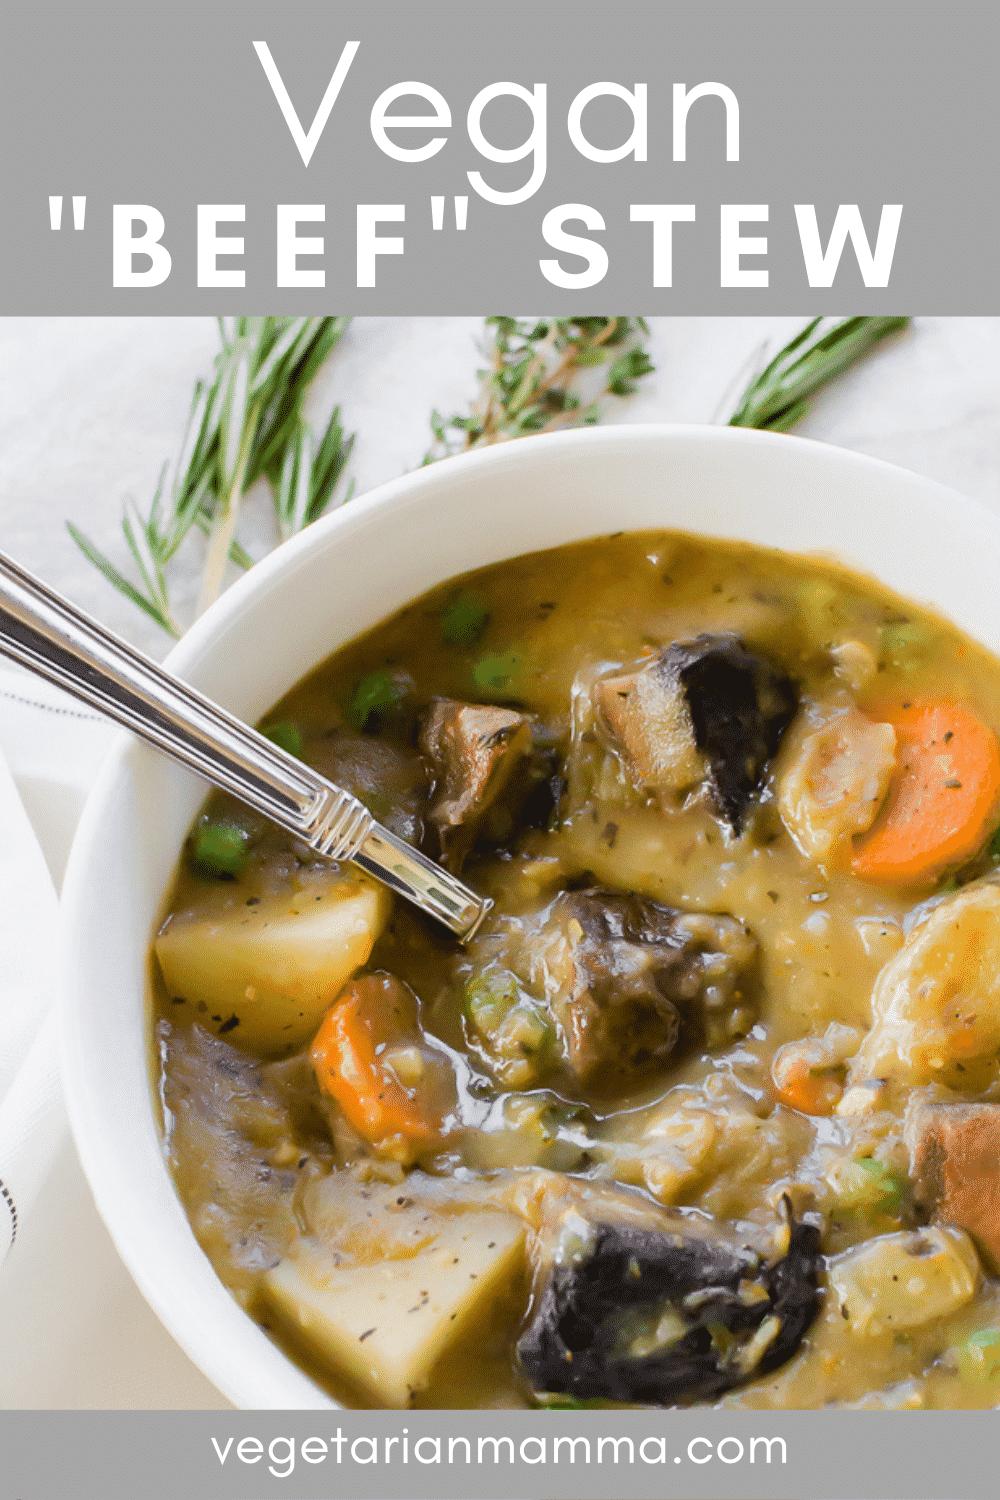 This Vegan Beef Stew is a savory blend of fresh herbs and vegetables. The stew combines plant-based ingredients to deliver superb flavor and texture. #vegan #veganbeefstew #meatlessstew